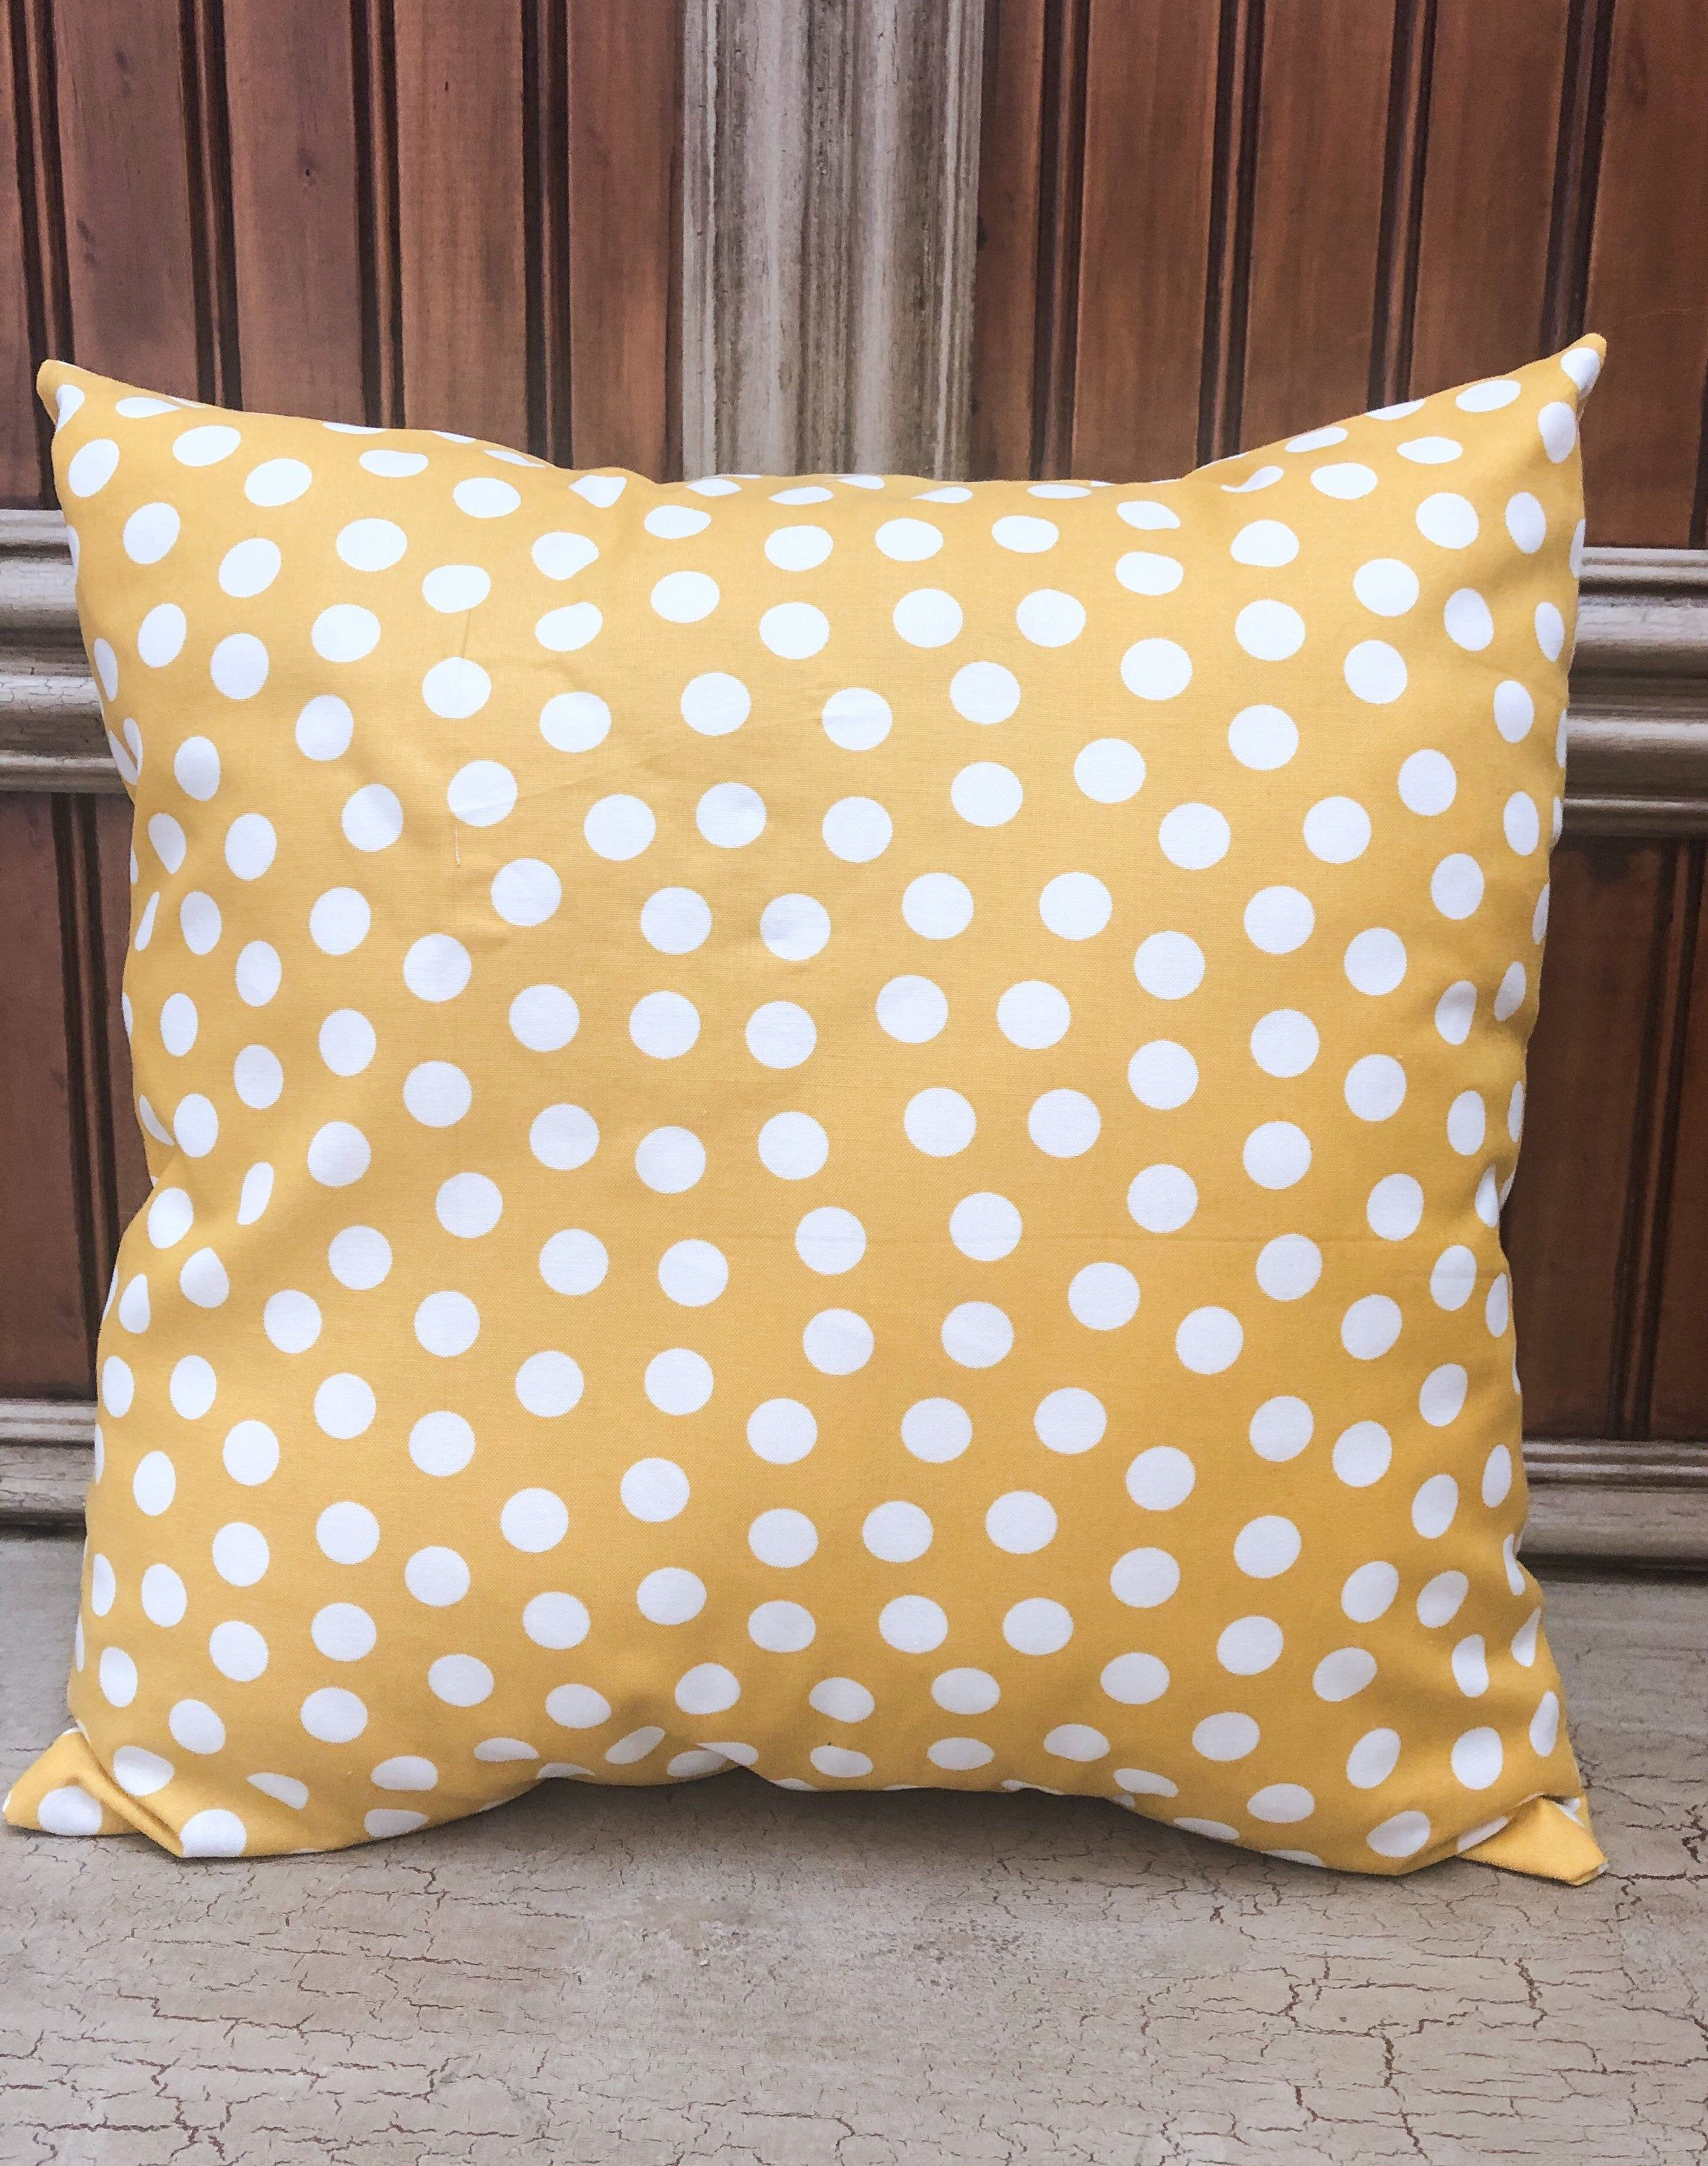 Polka Dot Pillow Covers Sofa Pillows